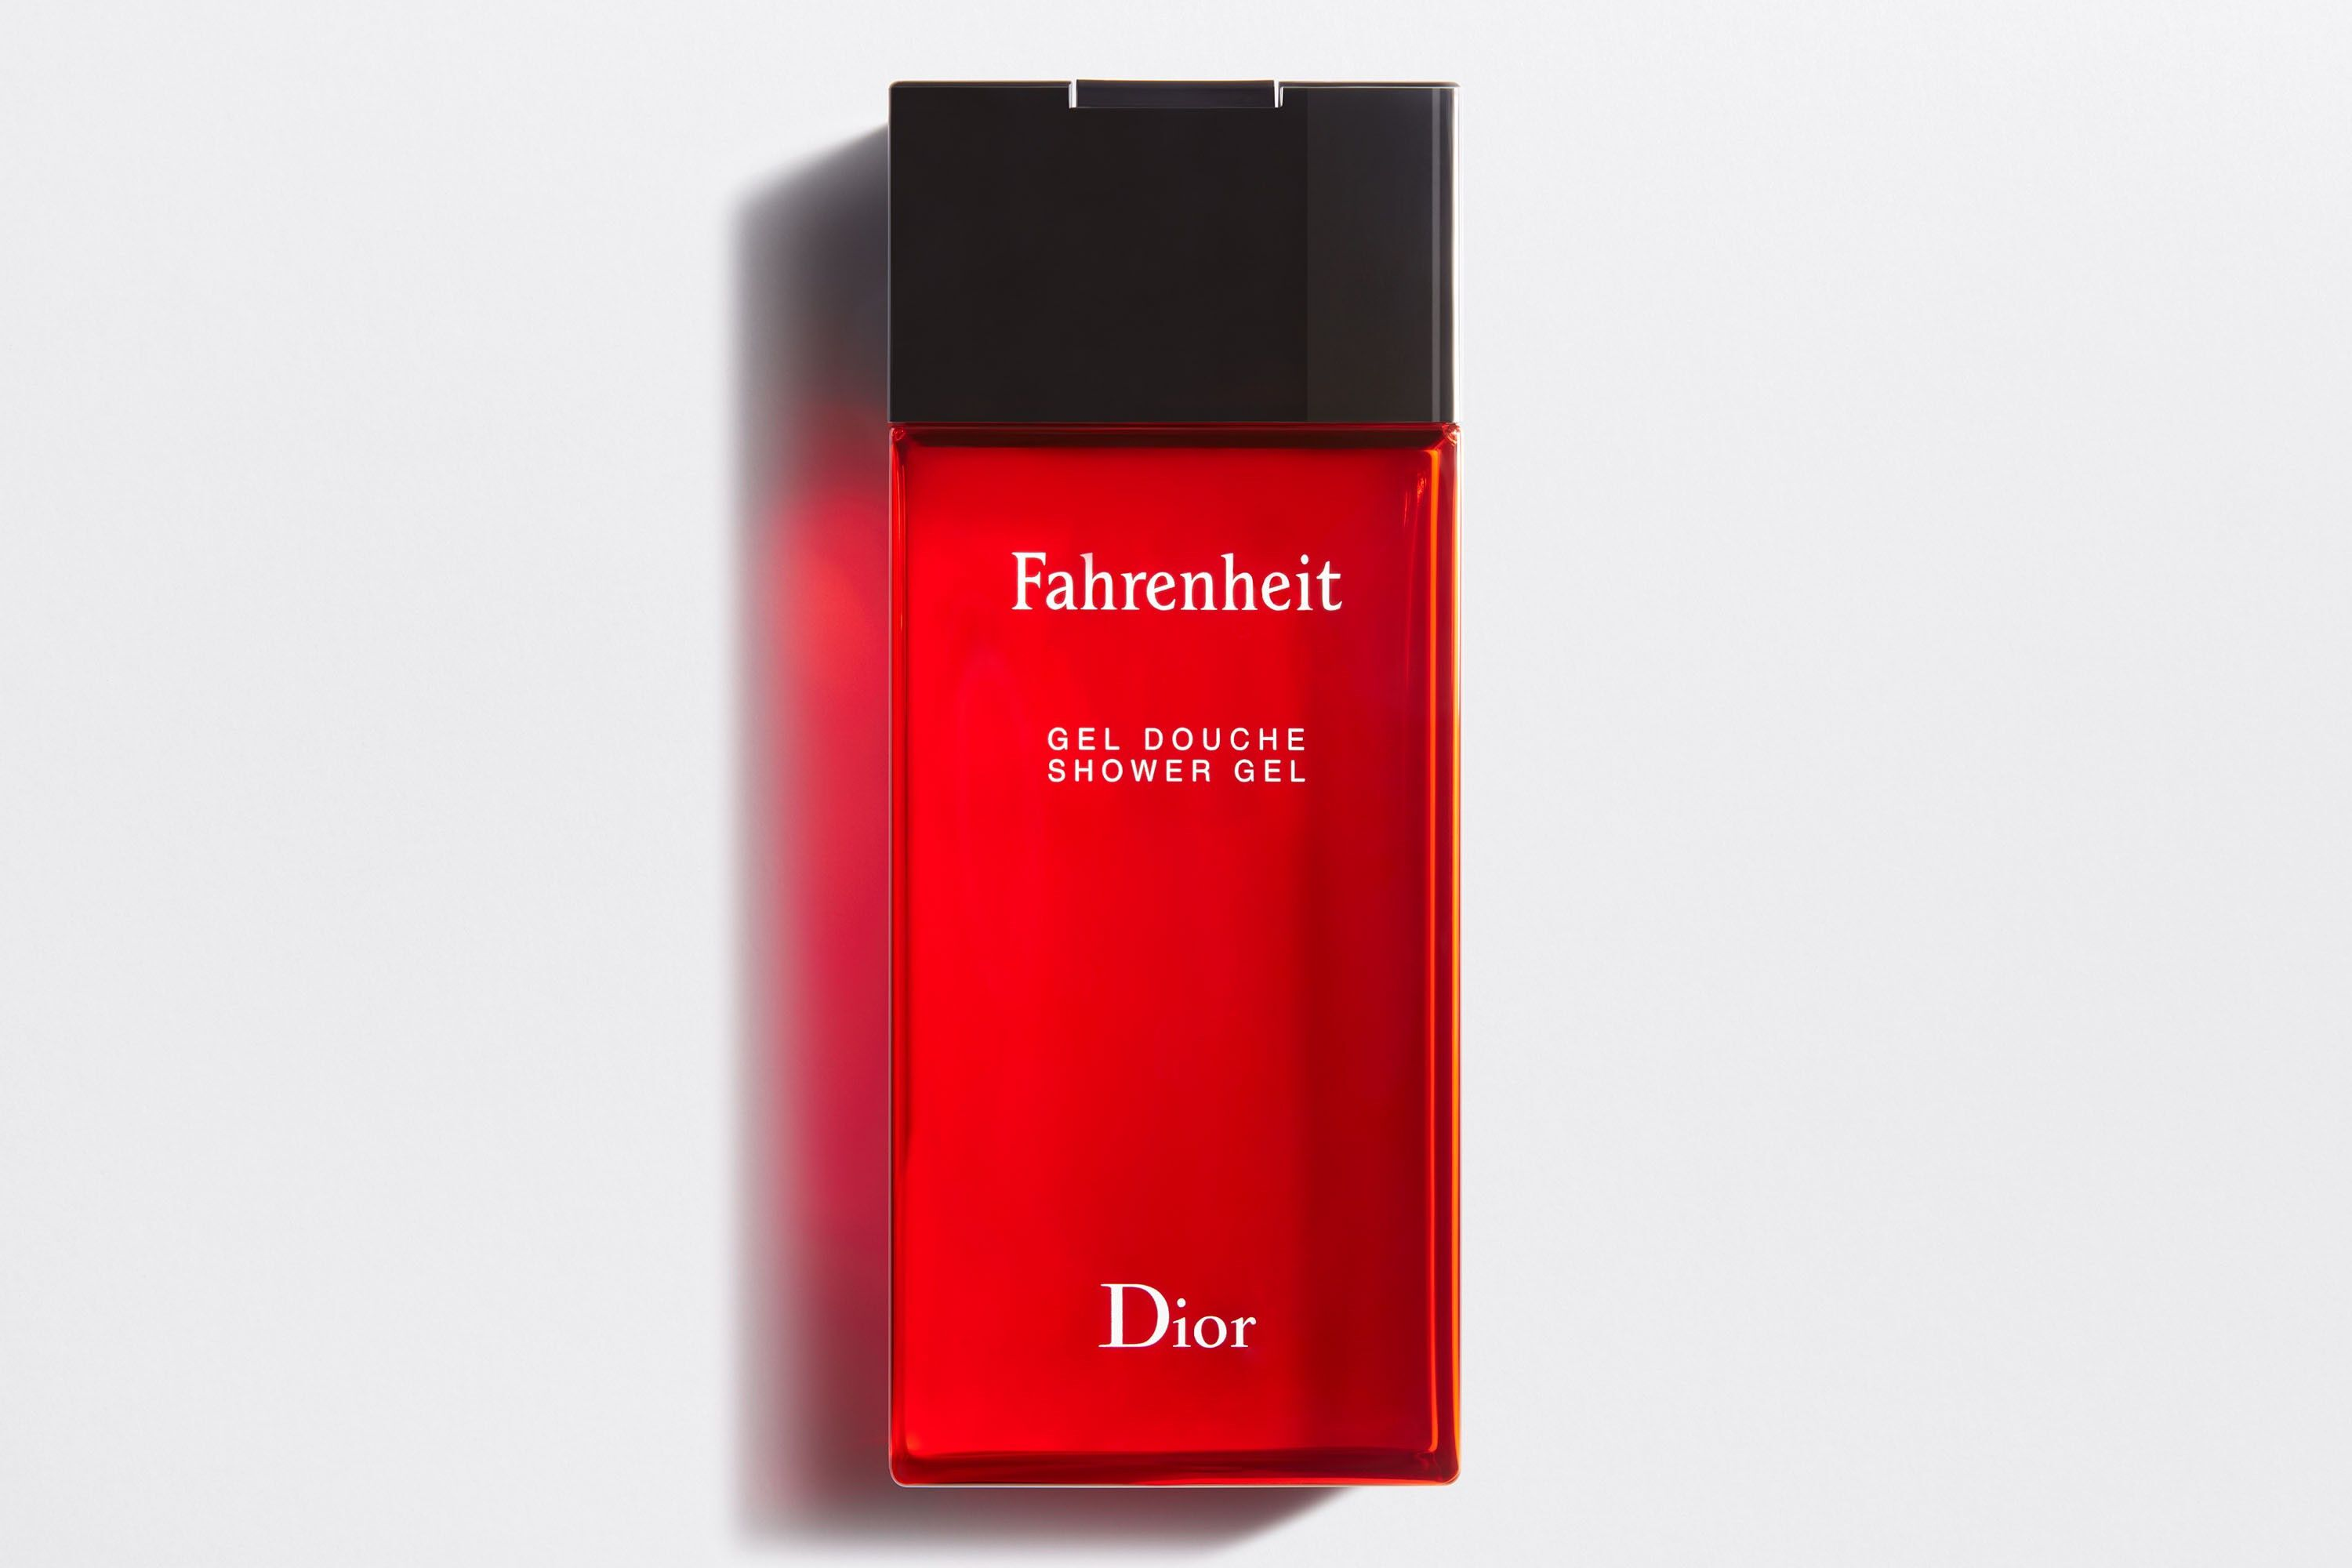 Fahrenheit Shower Gel Men S Fragrance Fragrance Dior